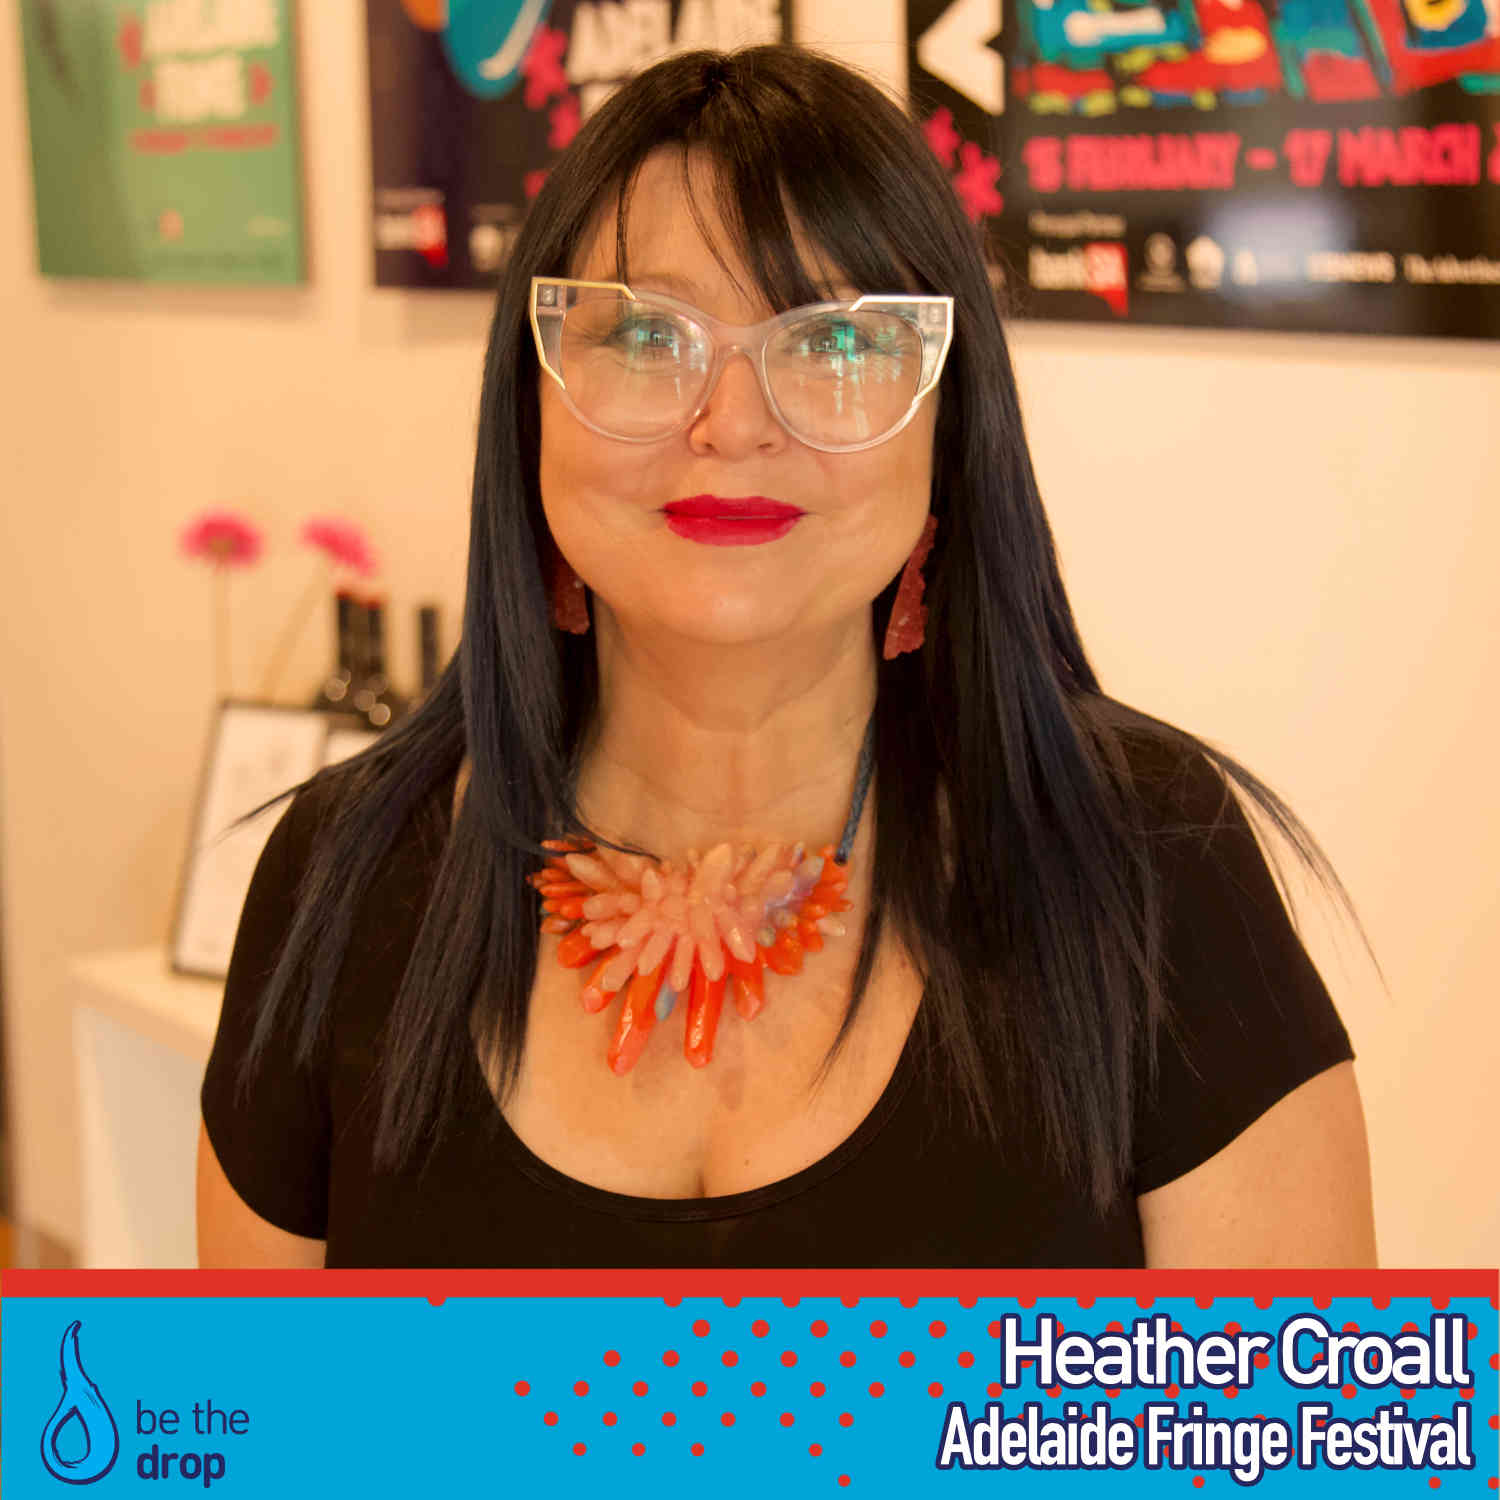 Adelaide Fringe Festival Director, Heather Croall on Be The Drop